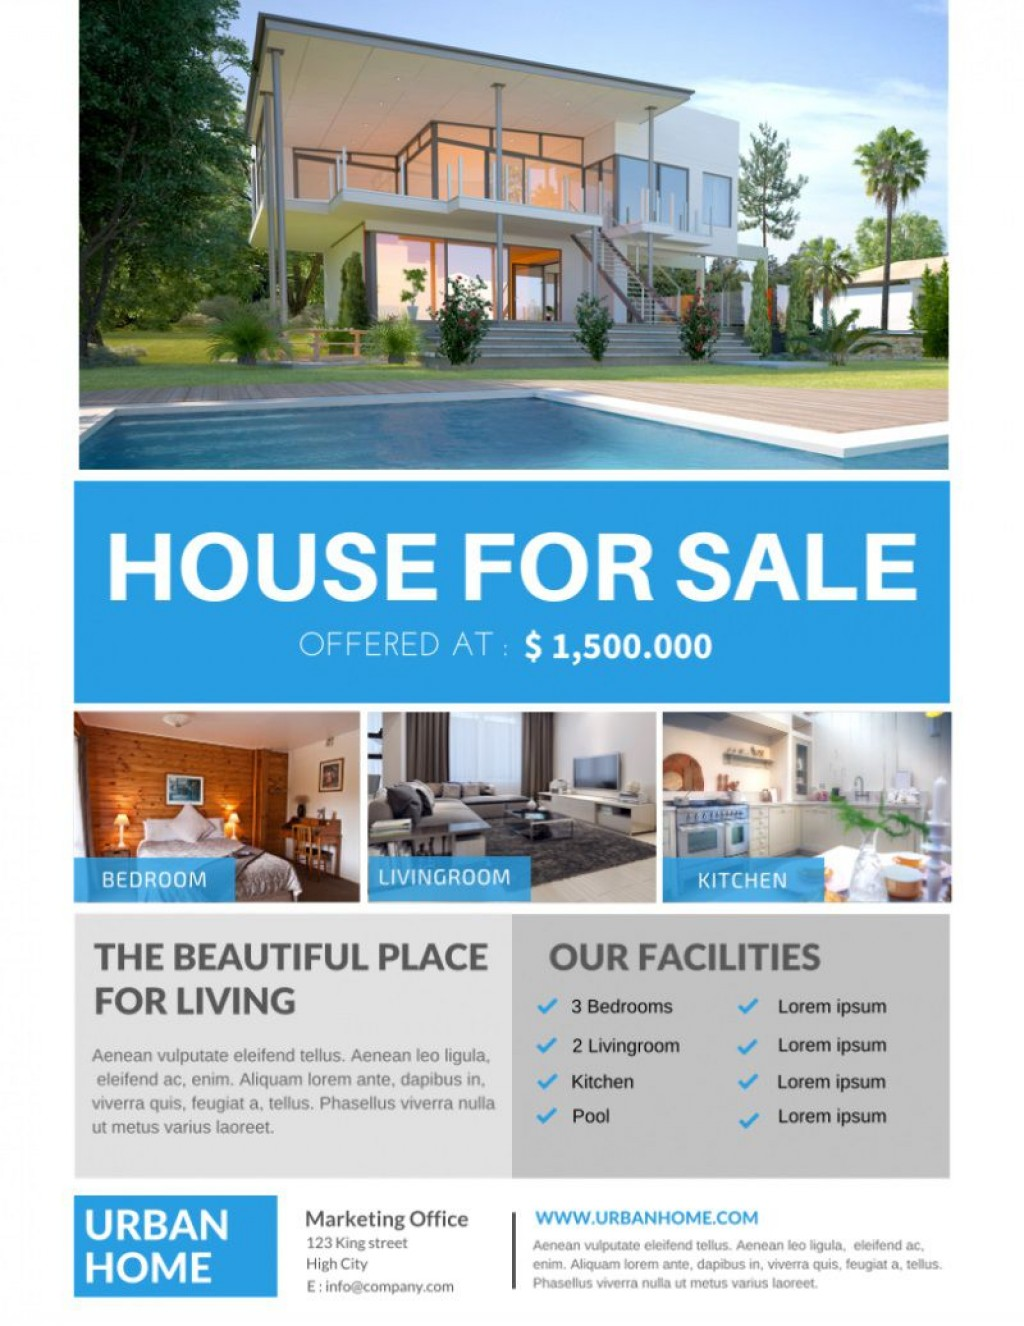 007 Breathtaking House For Sale Flyer Template Inspiration  Free Real Estate Example By OwnerLarge